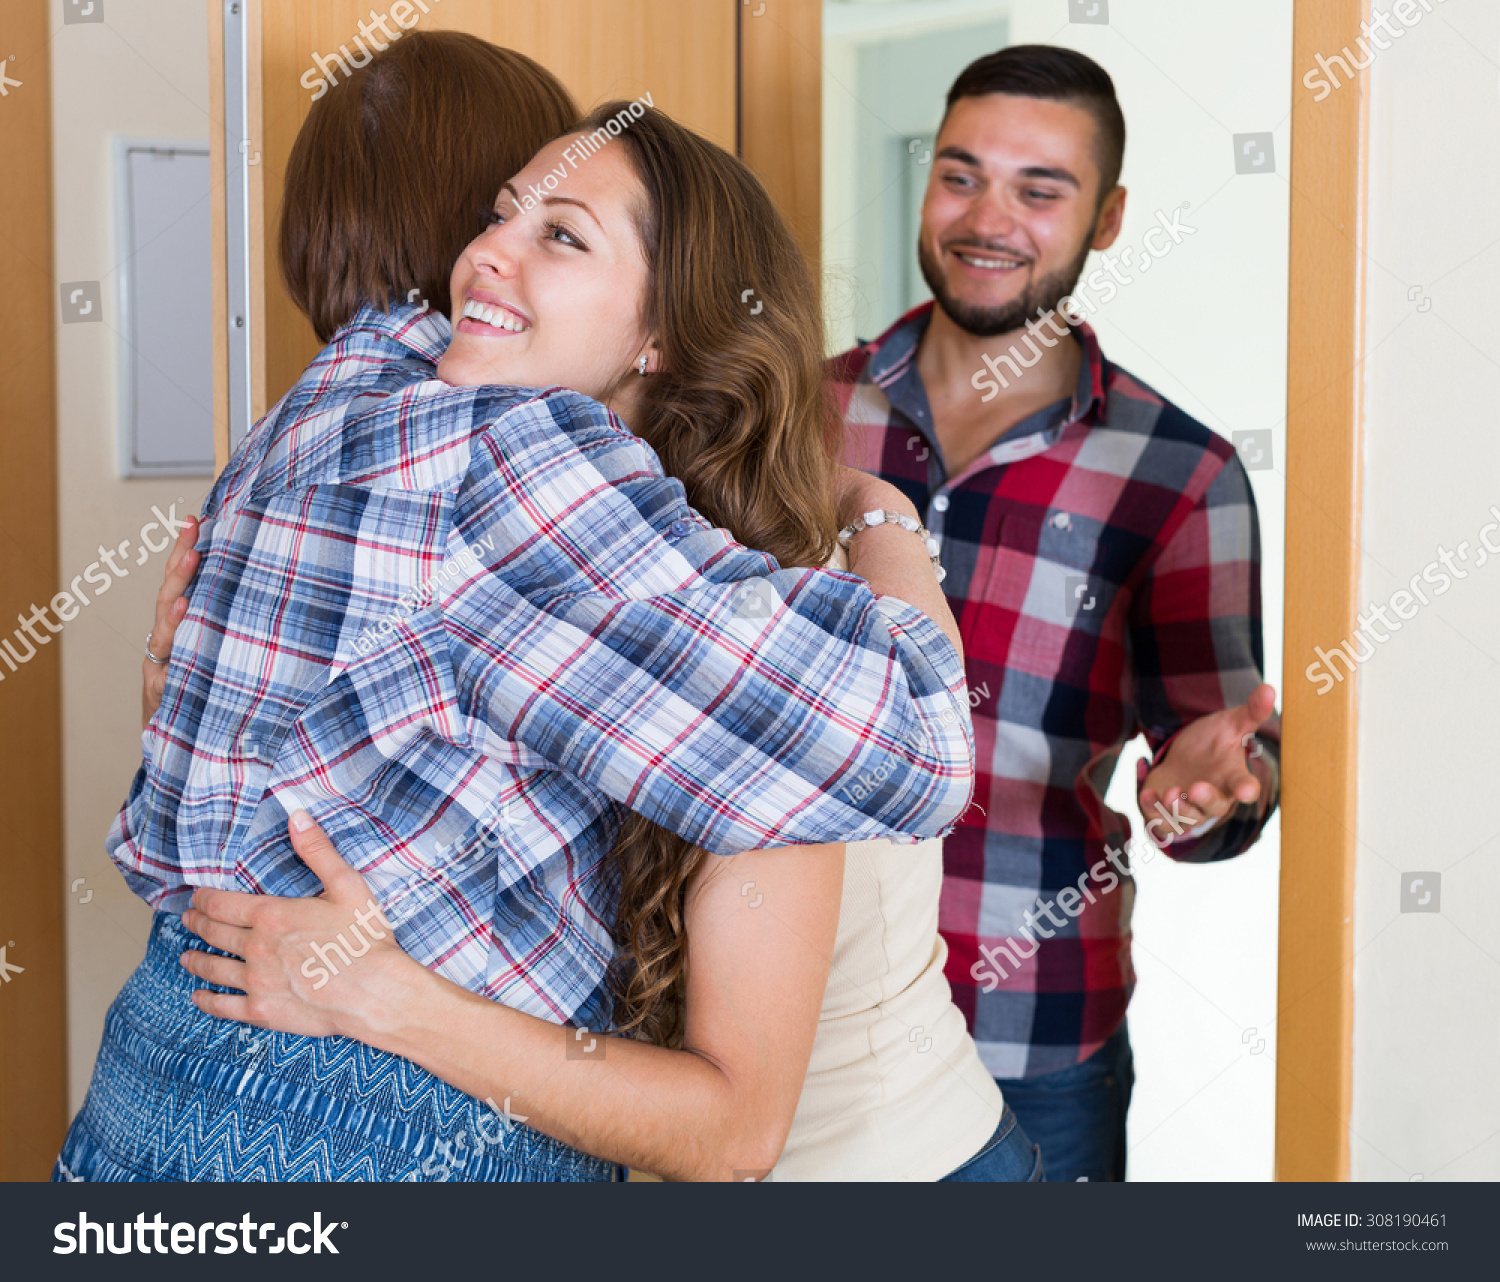 Will mature couples young boy consider